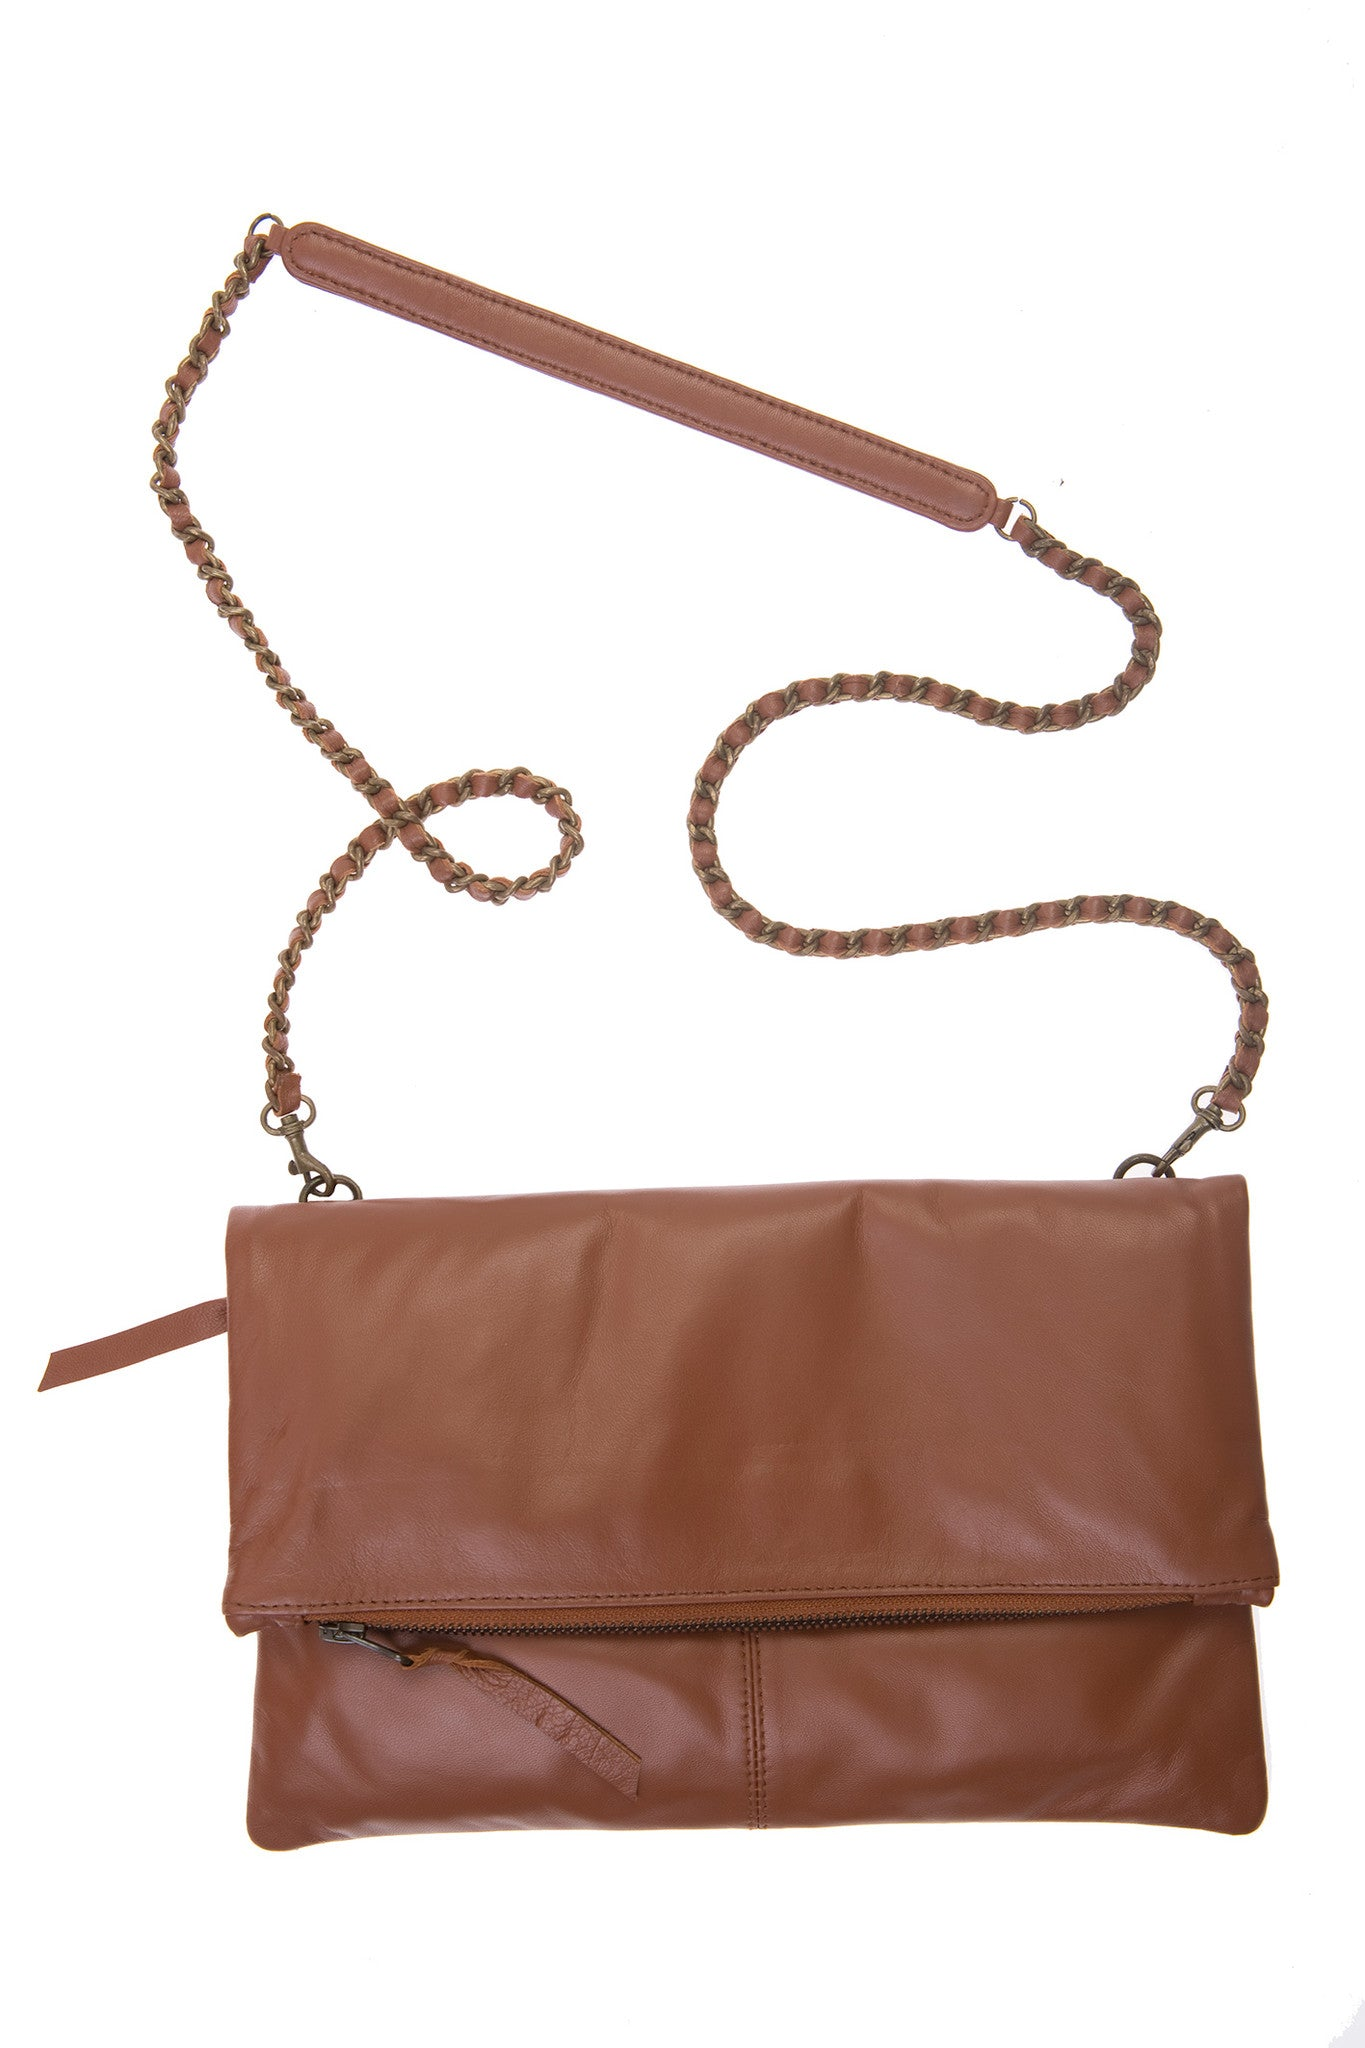 Italian Leather Tan Foldover Bag